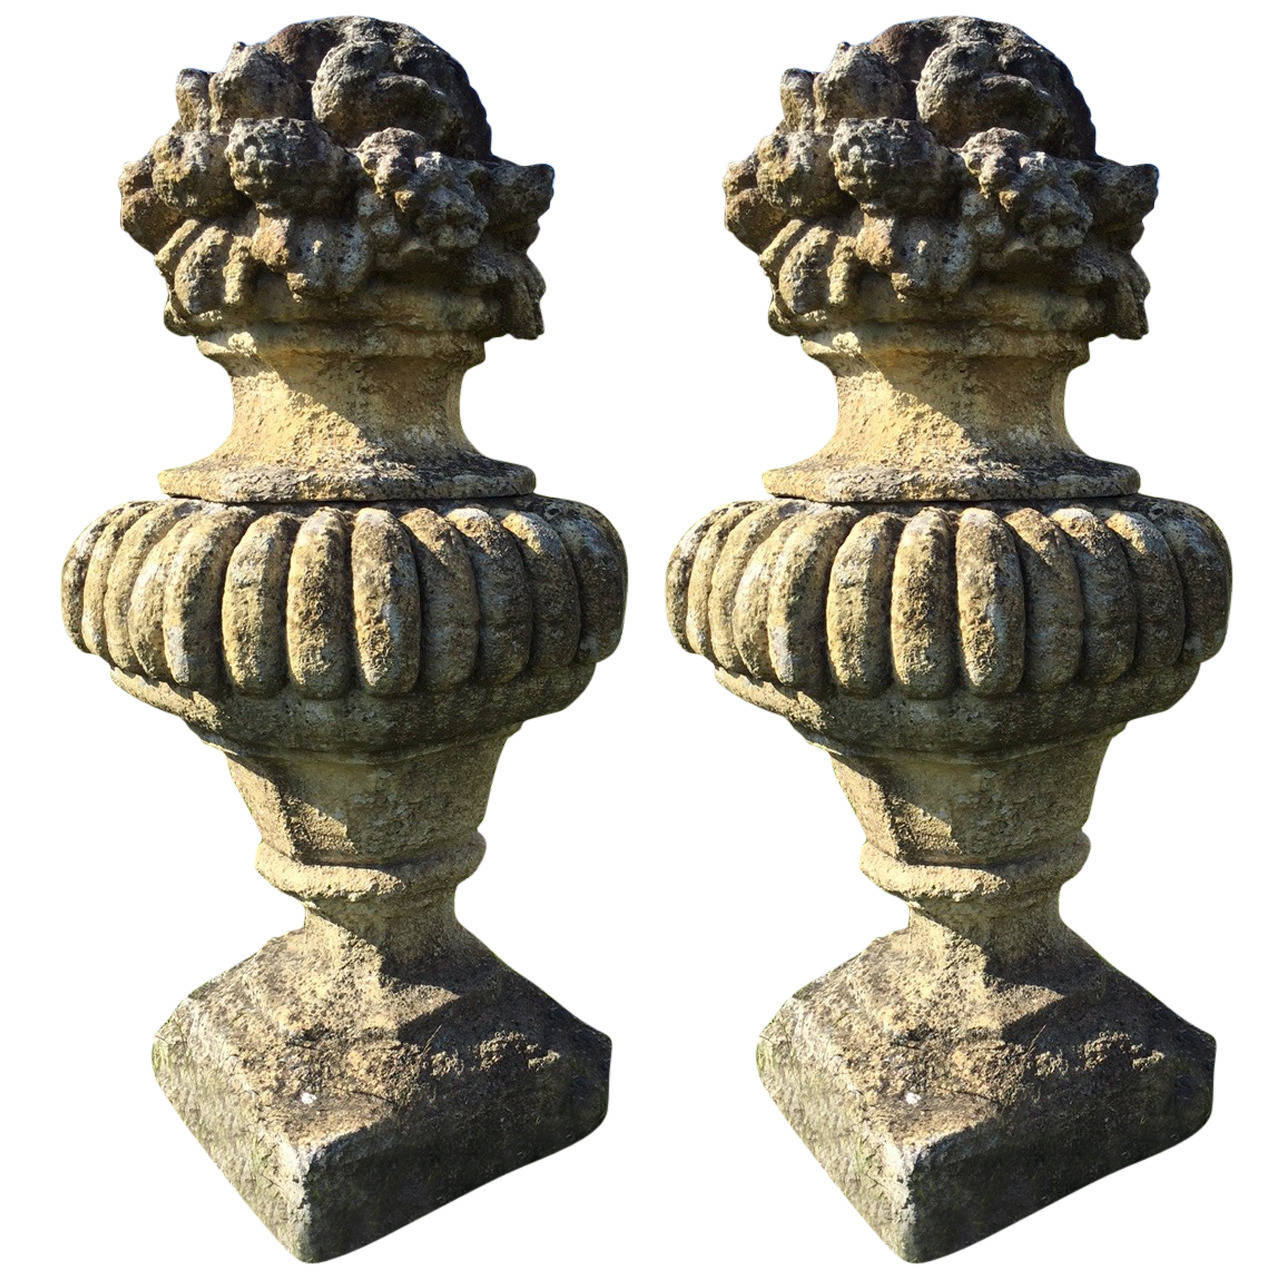 Monumental Pair of French Louis XIV Style Stone Urns, 1900s France